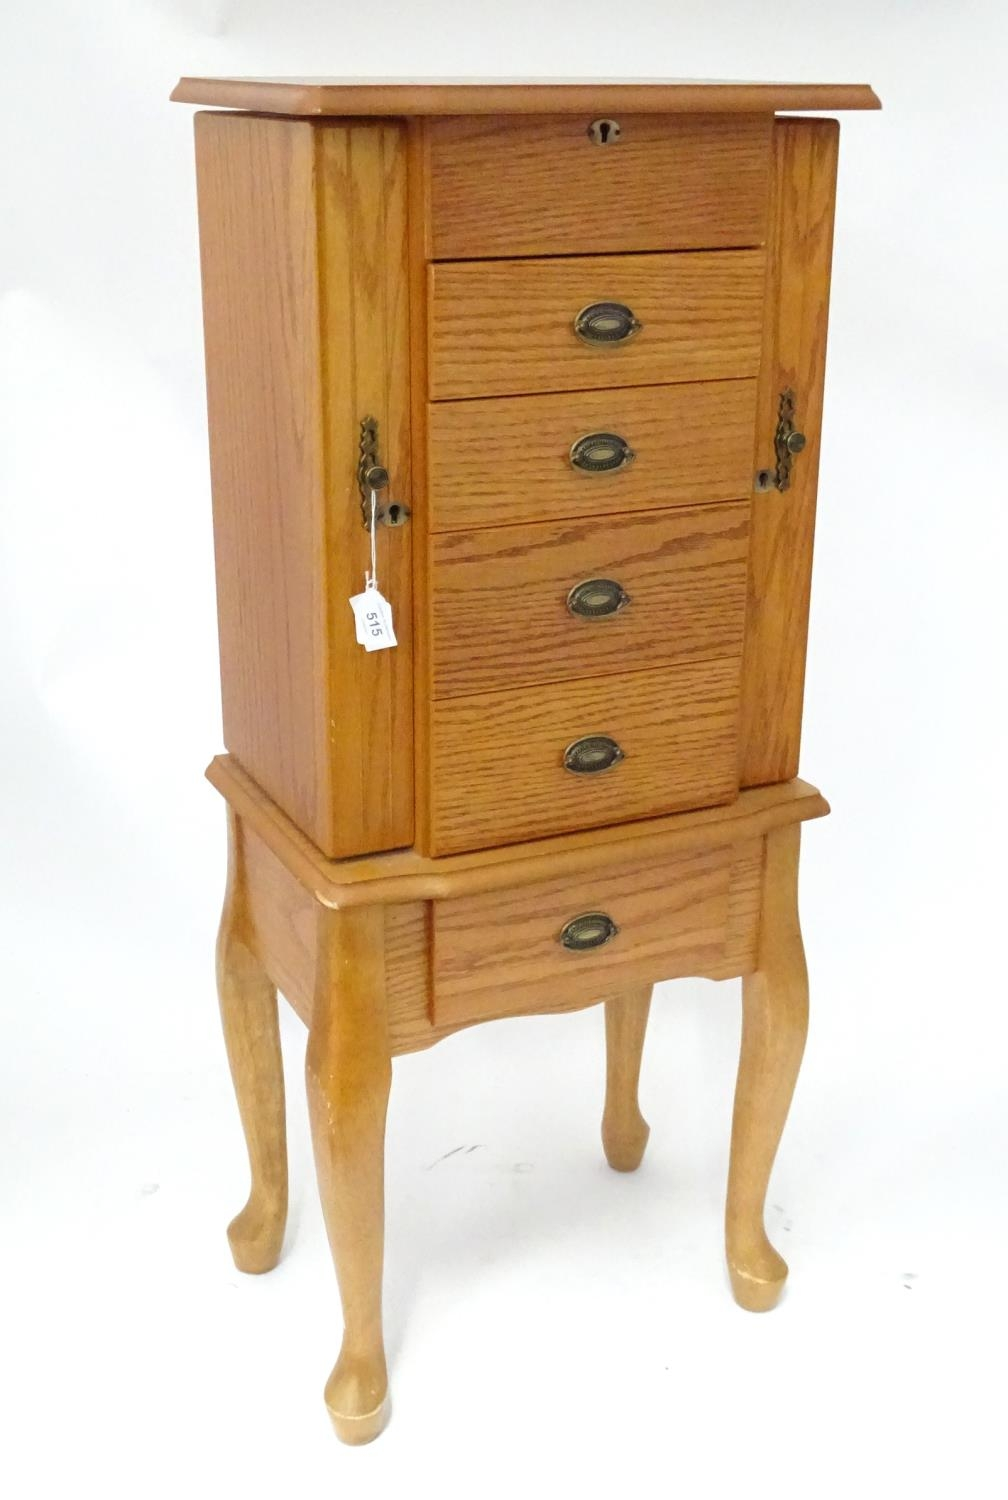 A jewellery cabinet Please Note - we do not make reference to the condition of lots within